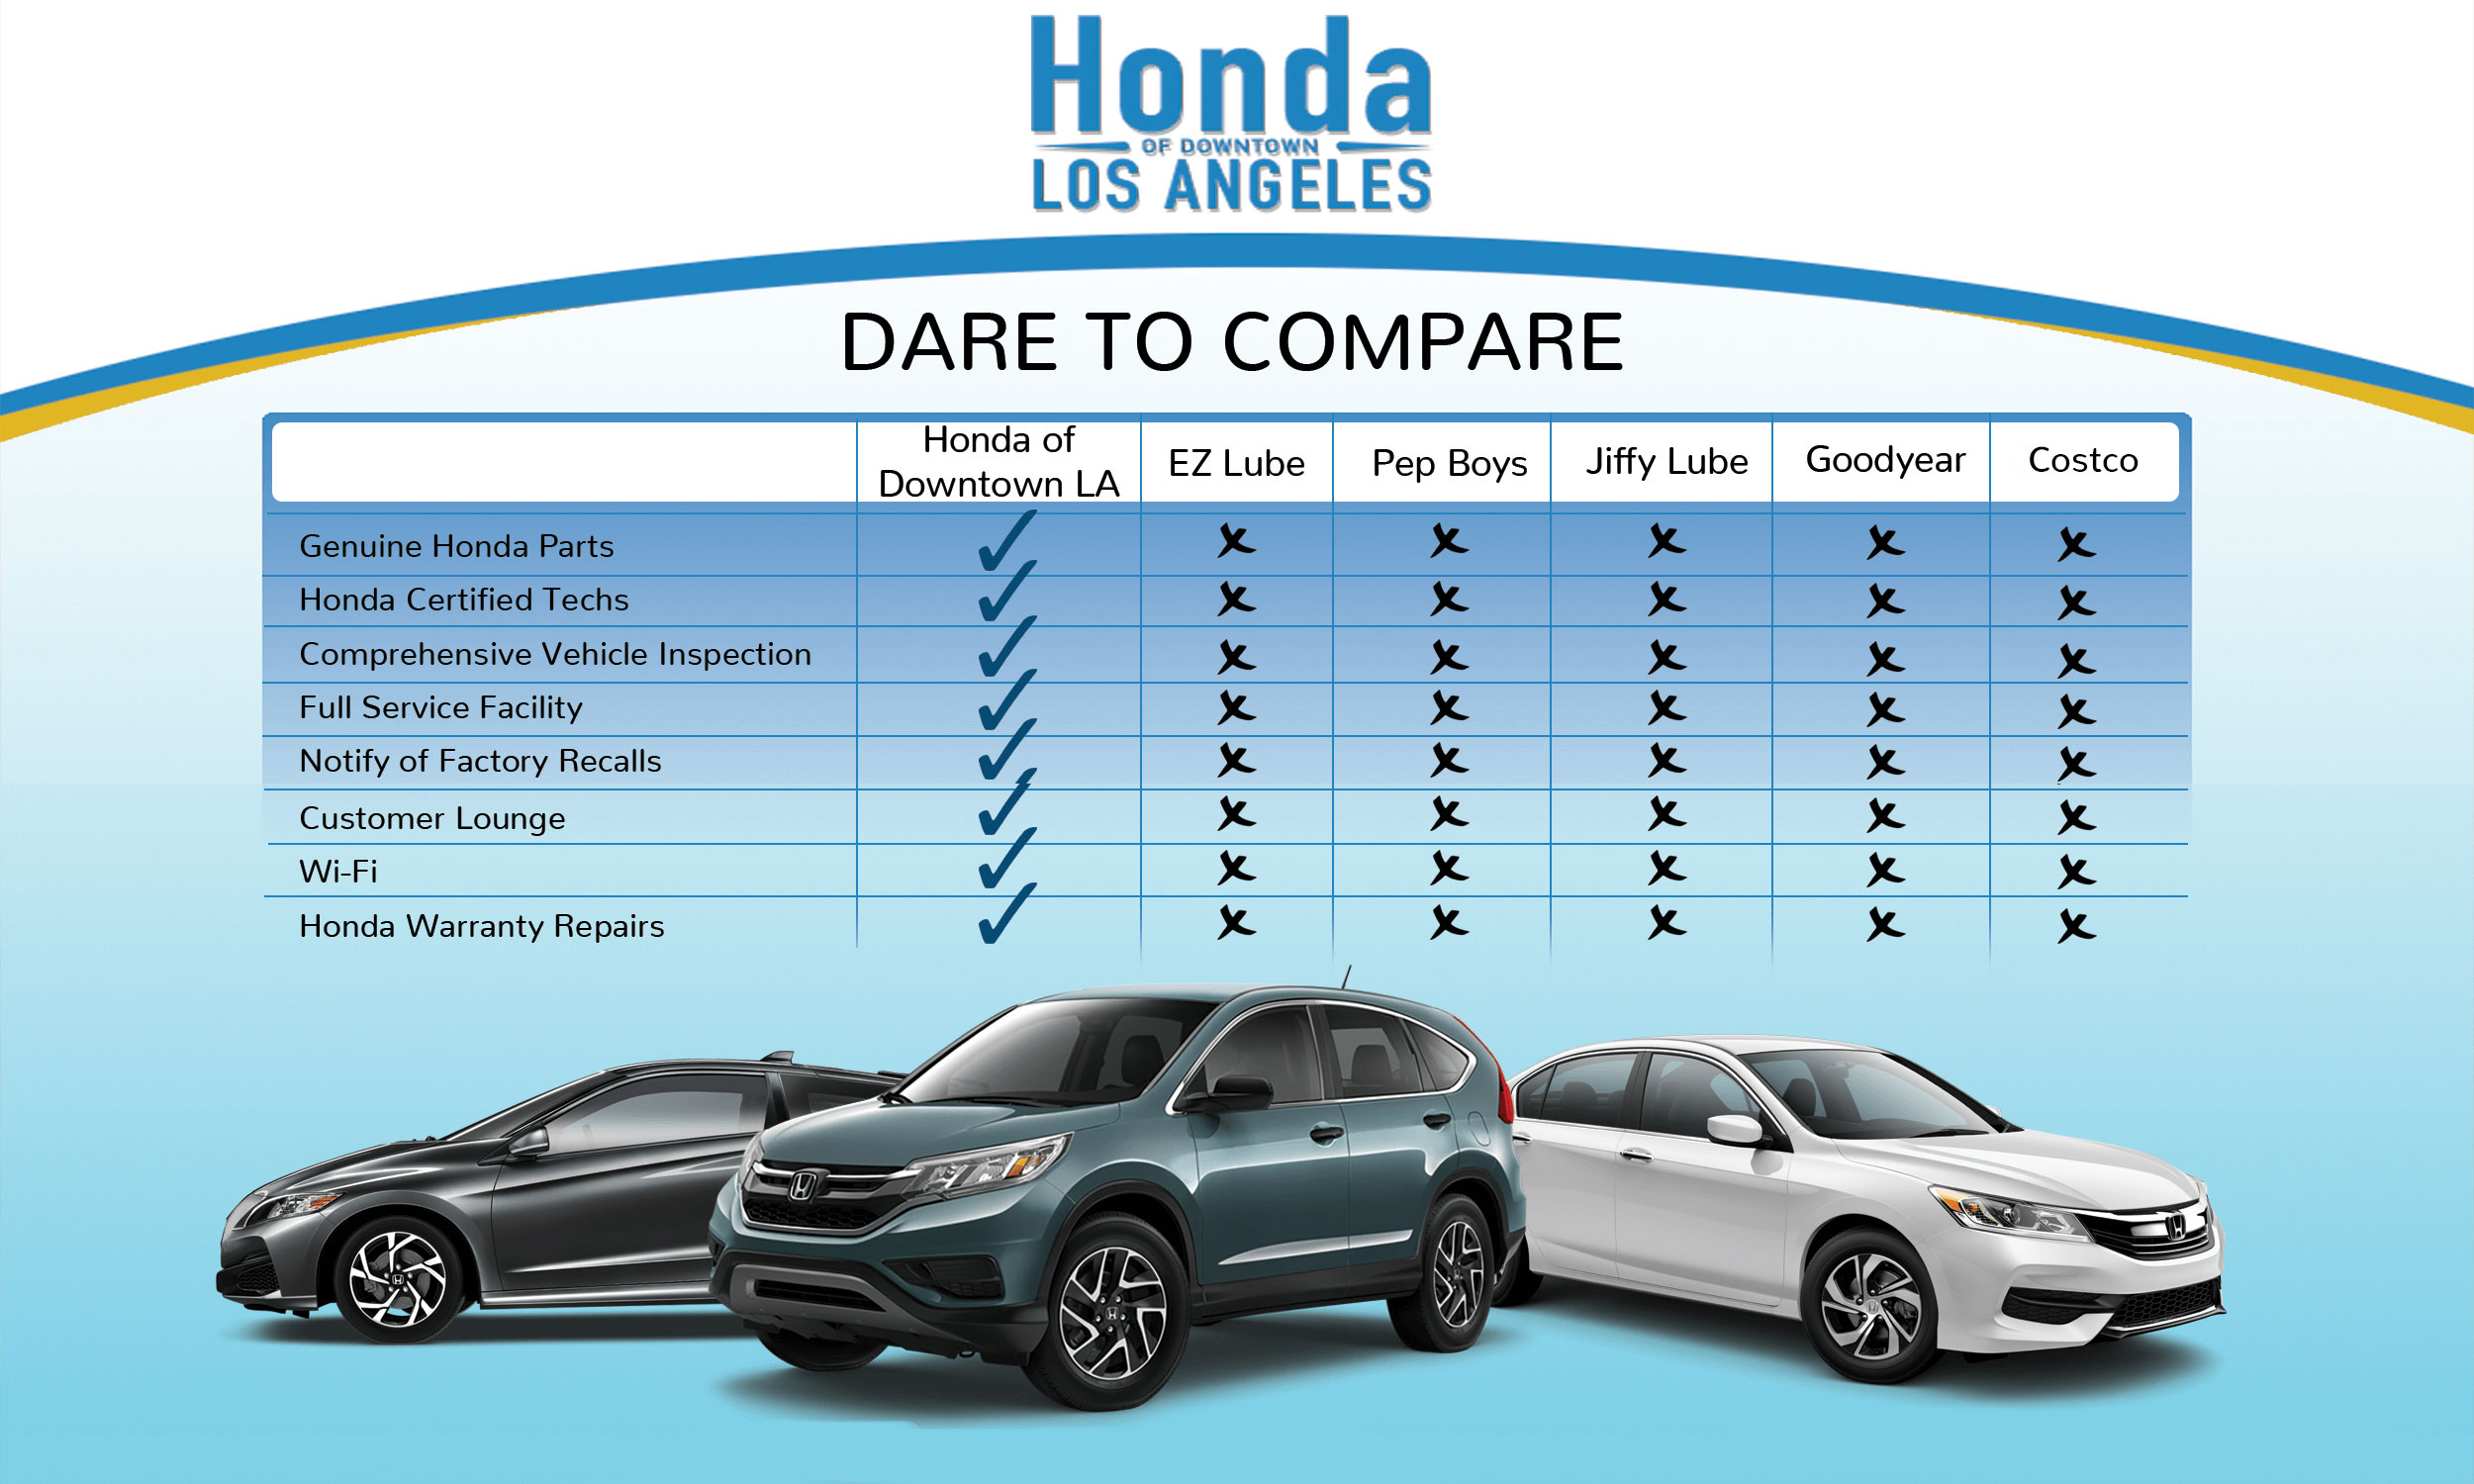 Honda Of Downtown Los Angeles Dare To Compare Service